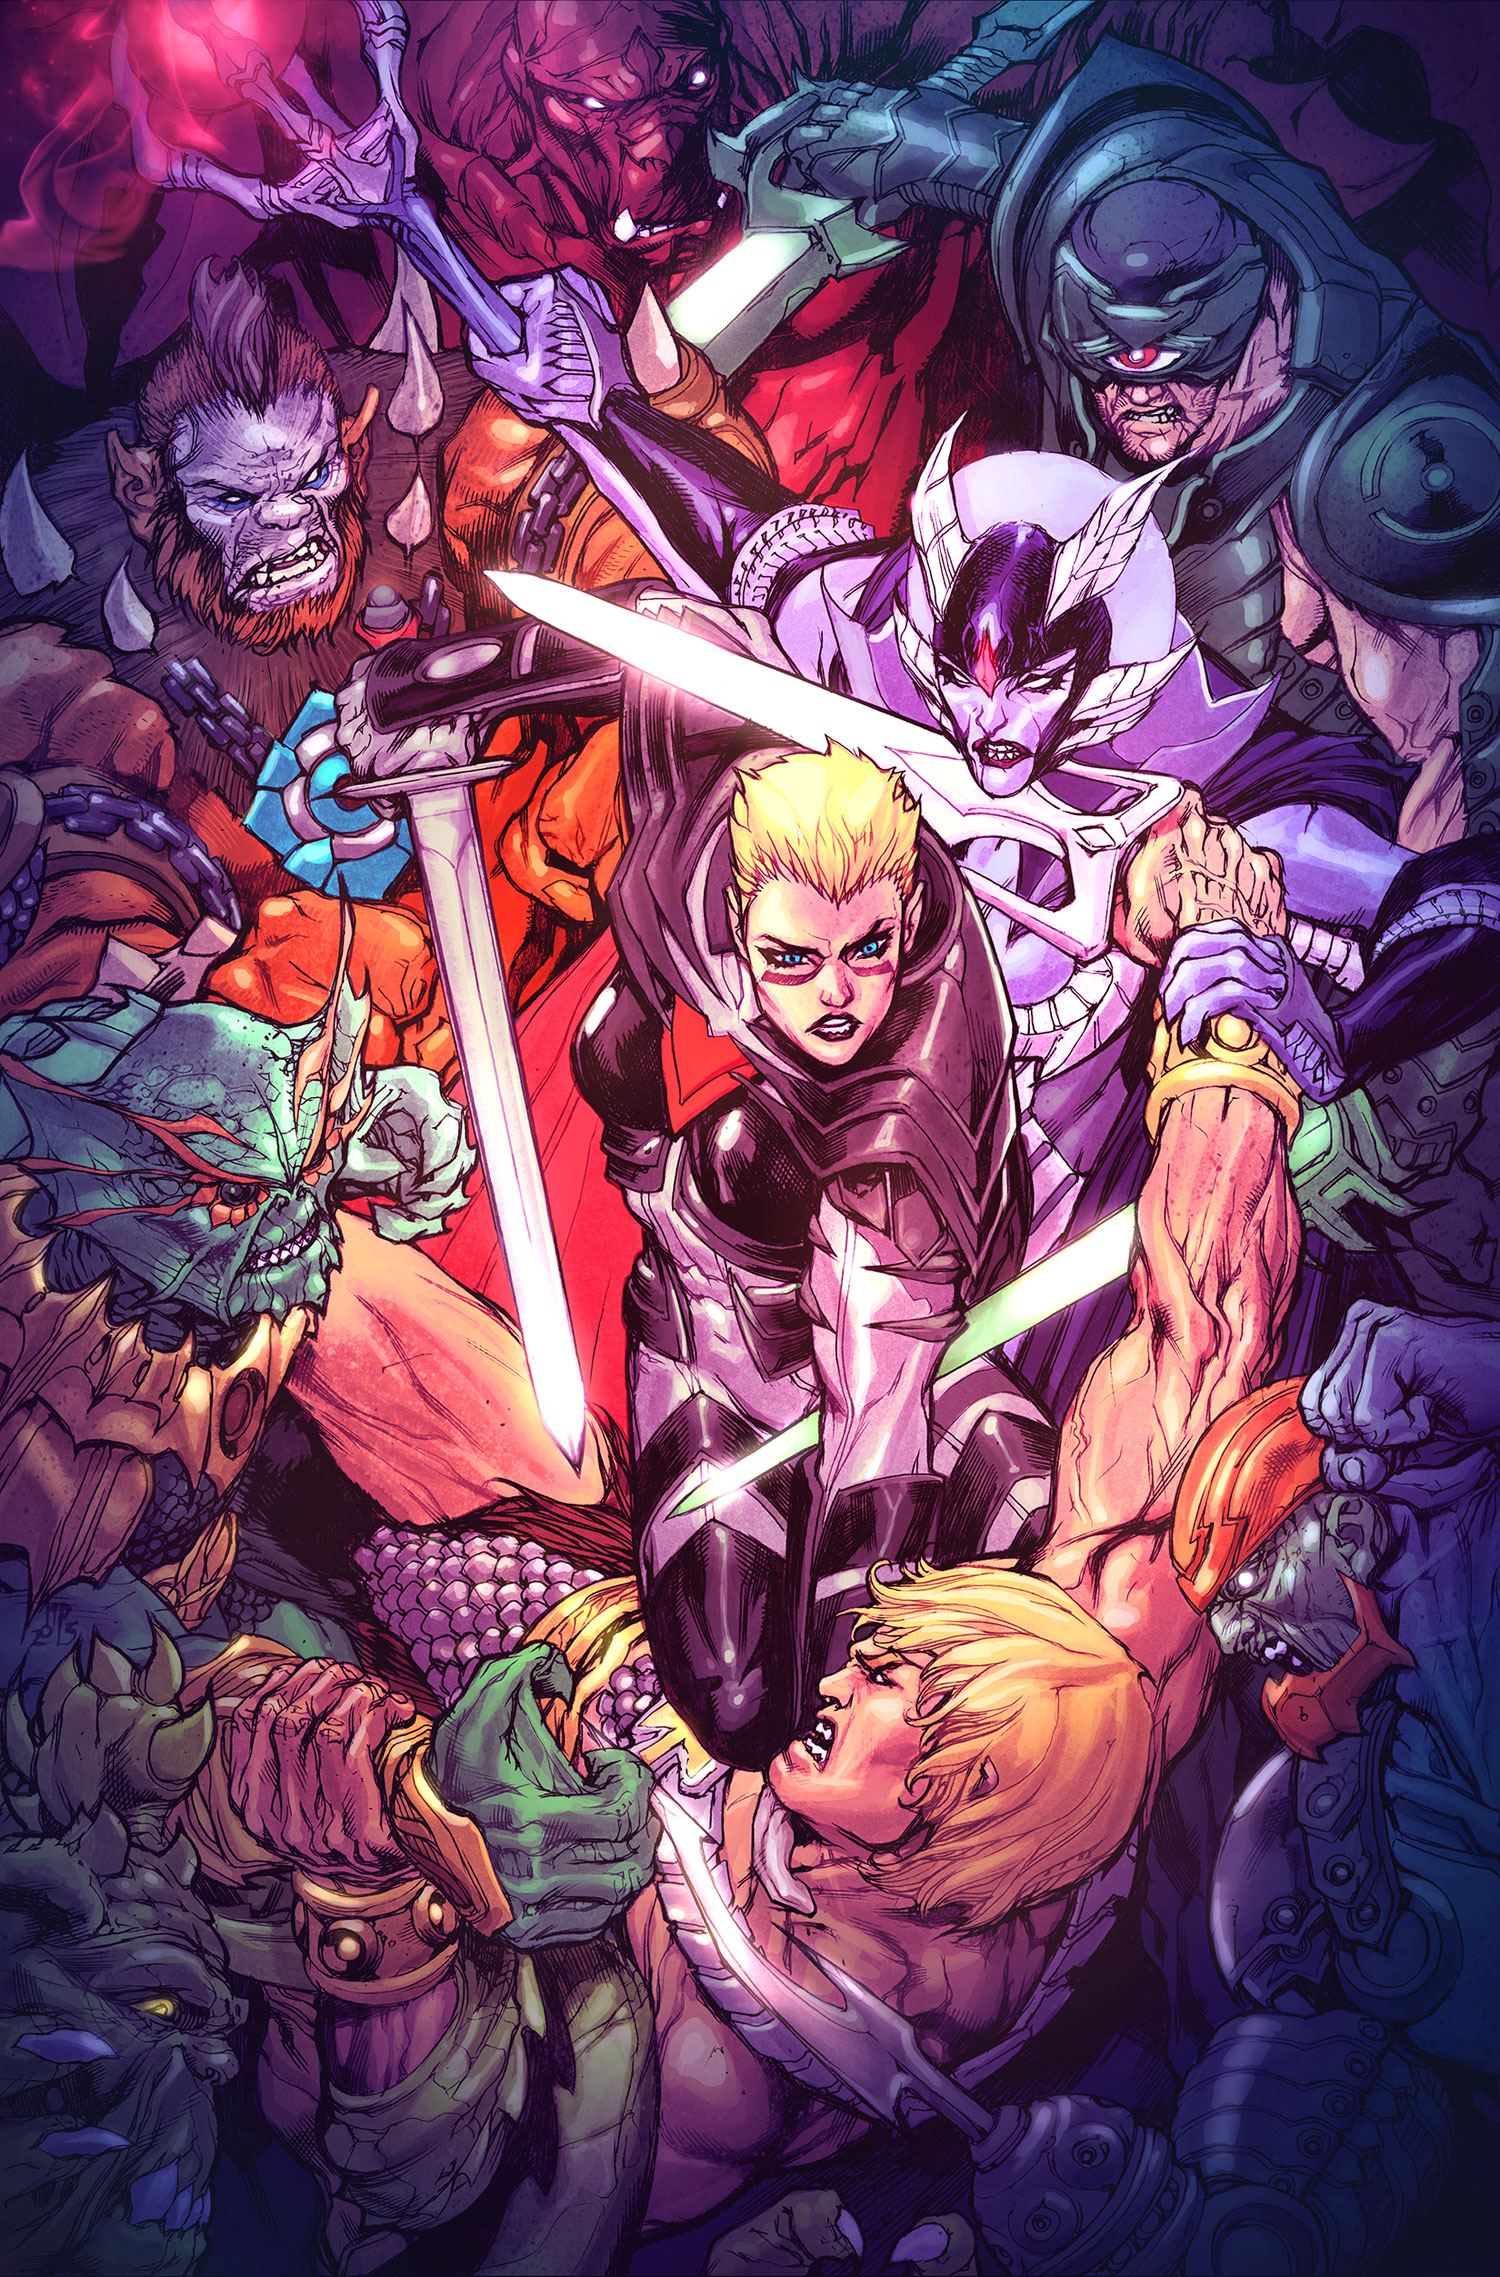 http://images4.wikia.nocookie.net/__cb20130515170147/marvel_dc/images/f/fa/He-Man_and_the_Masters_of_the_Universe_Vol_2_2_Textless.jpg